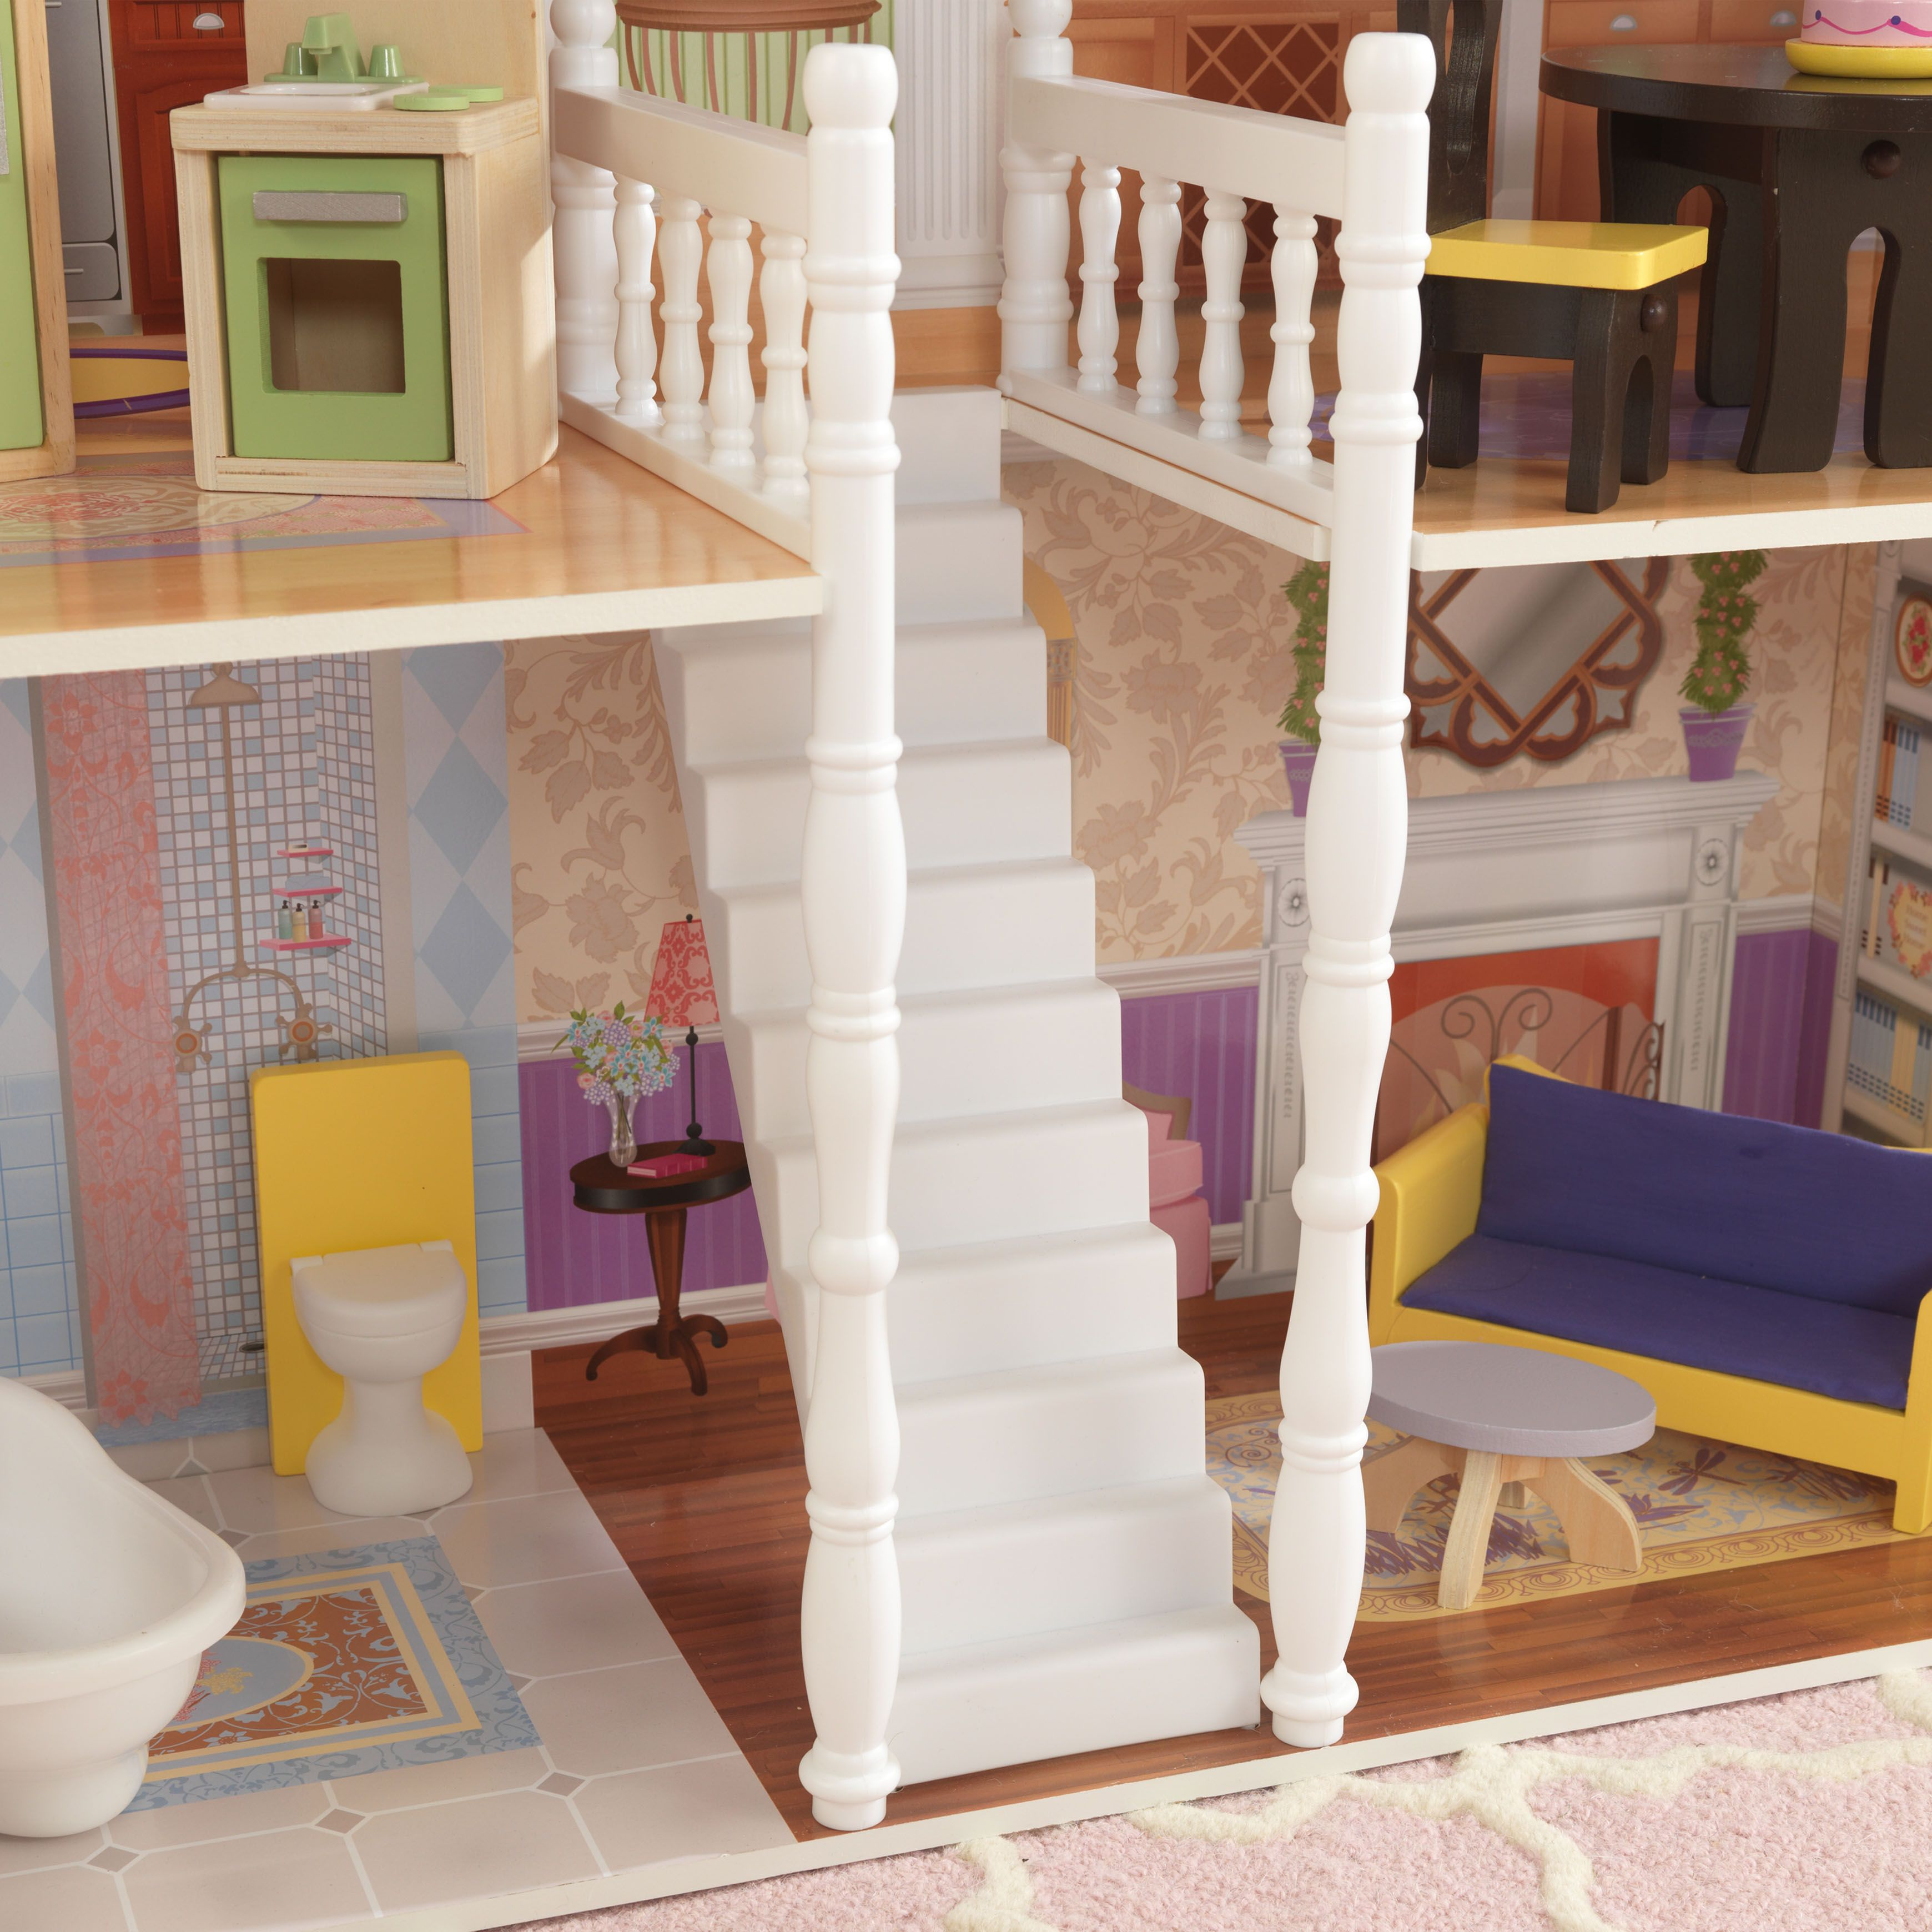 KidKraft Savannah Dollhouse with 13 accessories included